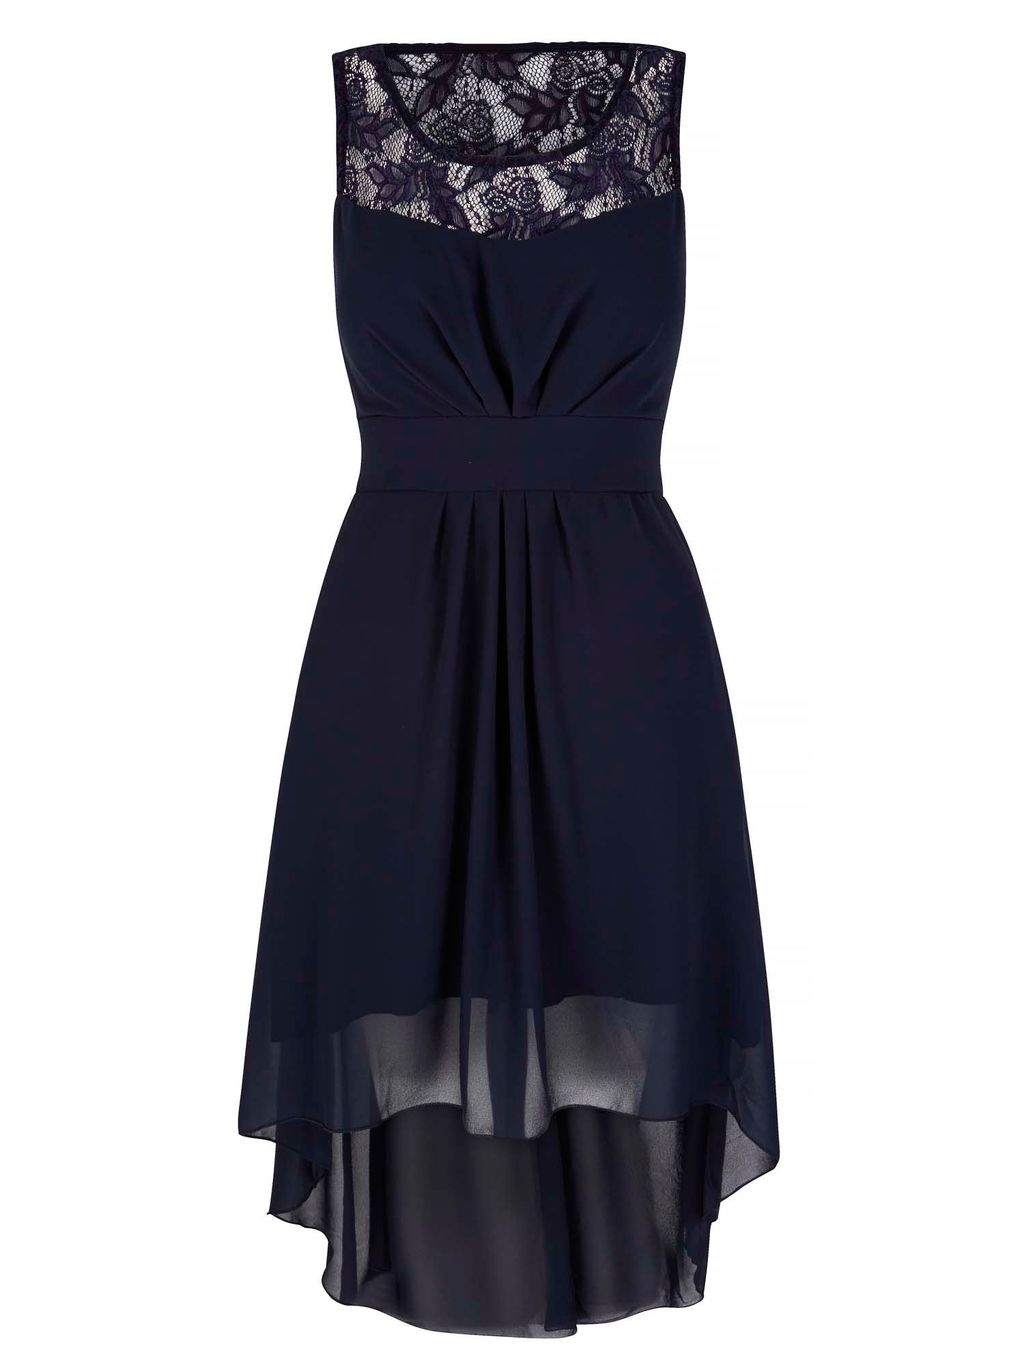 Lace Neckline High Low Dress, Navy - pattern: plain; sleeve style: sleeveless; waist detail: fitted waist; bust detail: subtle bust detail; predominant colour: navy; occasions: evening, occasion; length: just above the knee; fit: fitted at waist & bust; style: asymmetric (hem); neckline: scoop; fibres: polyester/polyamide - 100%; hip detail: subtle/flattering hip detail; sleeve length: sleeveless; texture group: sheer fabrics/chiffon/organza etc.; pattern type: fabric; embellishment: lace; shoulder detail: sheer at shoulder; season: s/s 2016; wardrobe: event